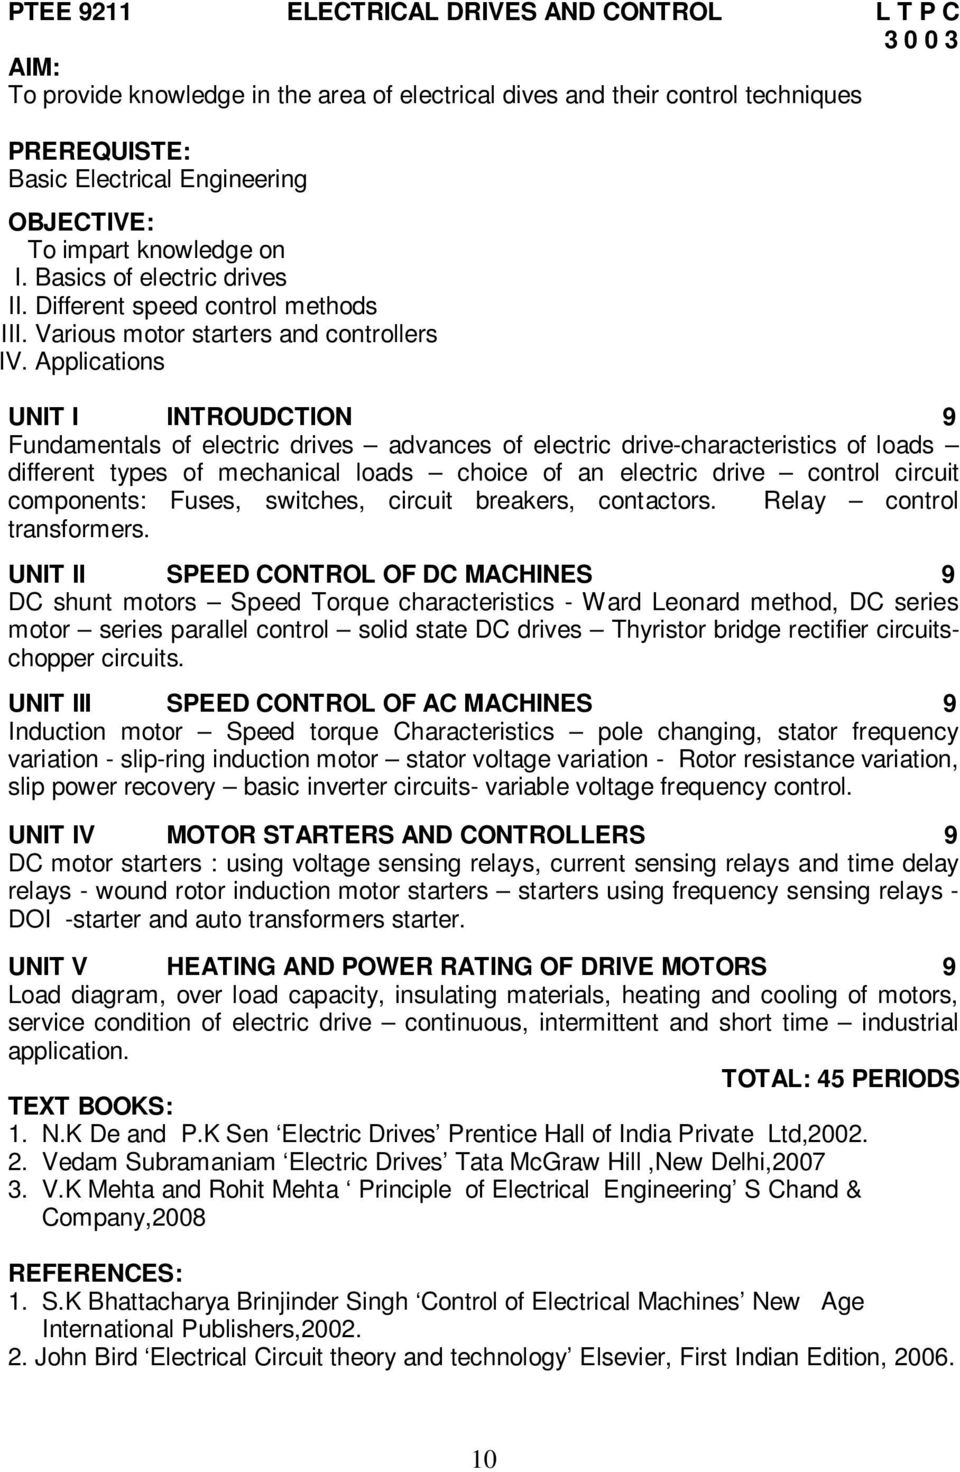 Electric Drives And Control Pdf